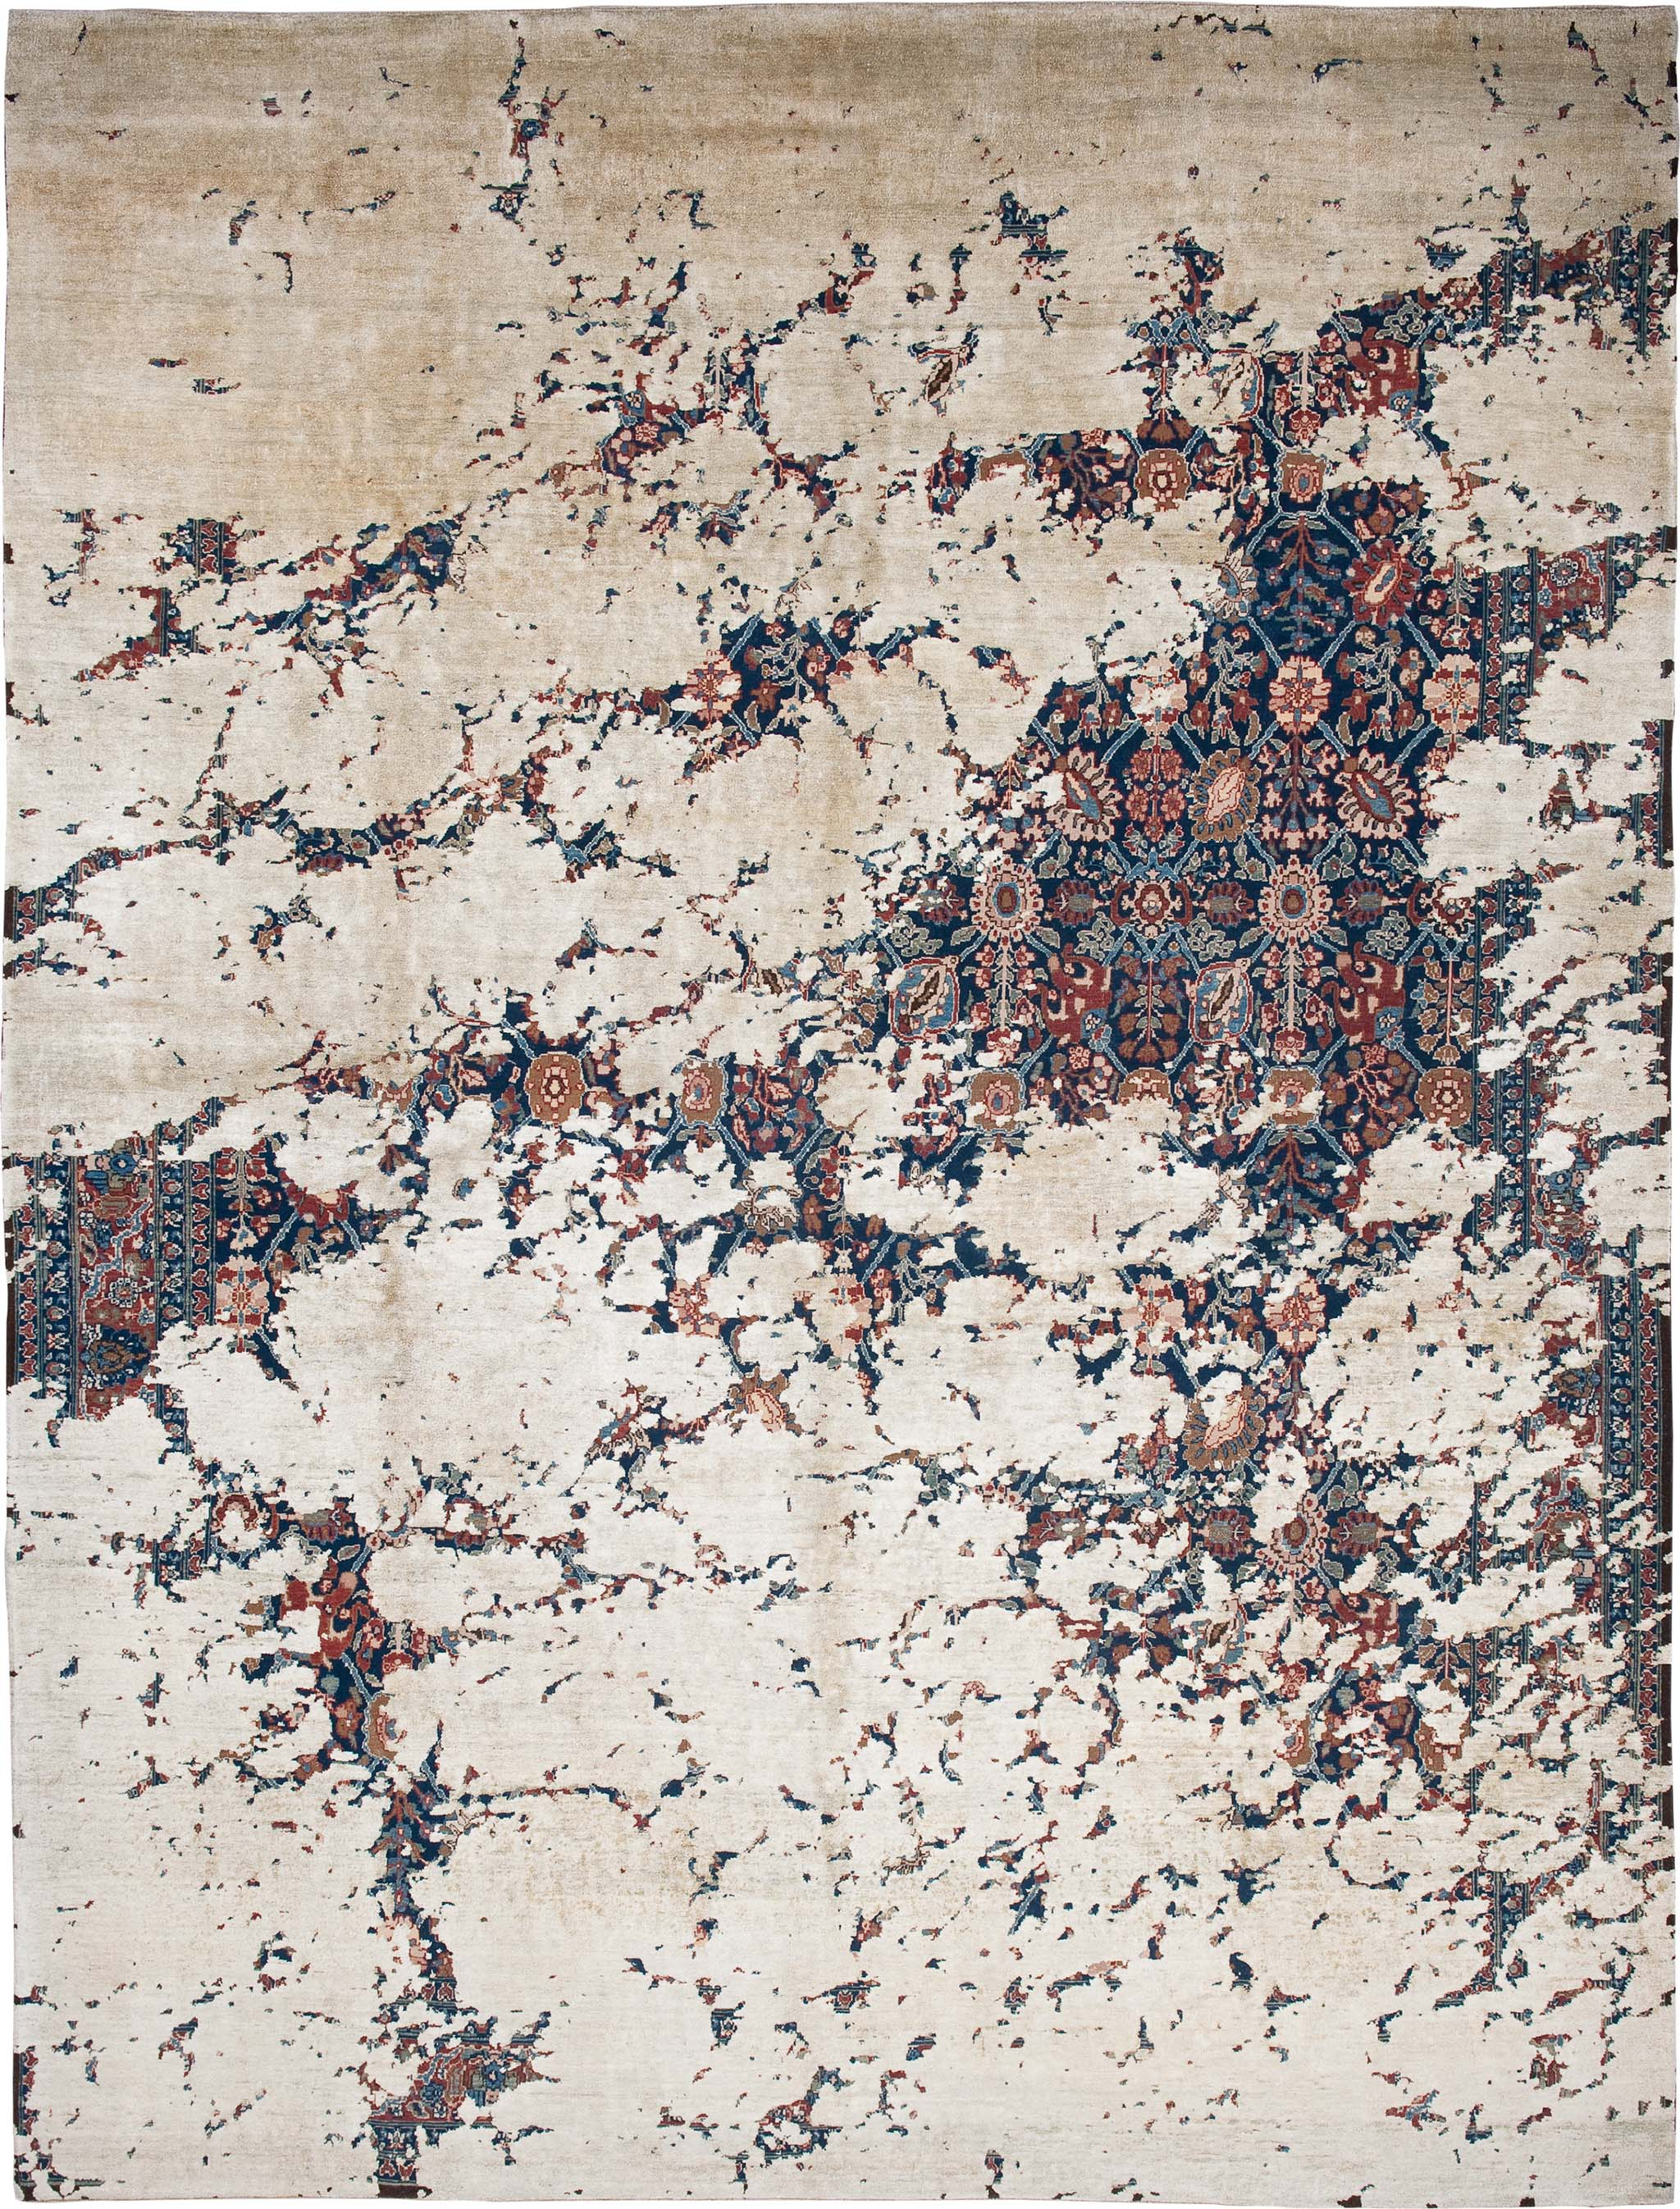 'Tabriz Aerial' from Jan Kath's 'Erased Heritage' collection of carpets. | Image courtesy of Jan Kath.